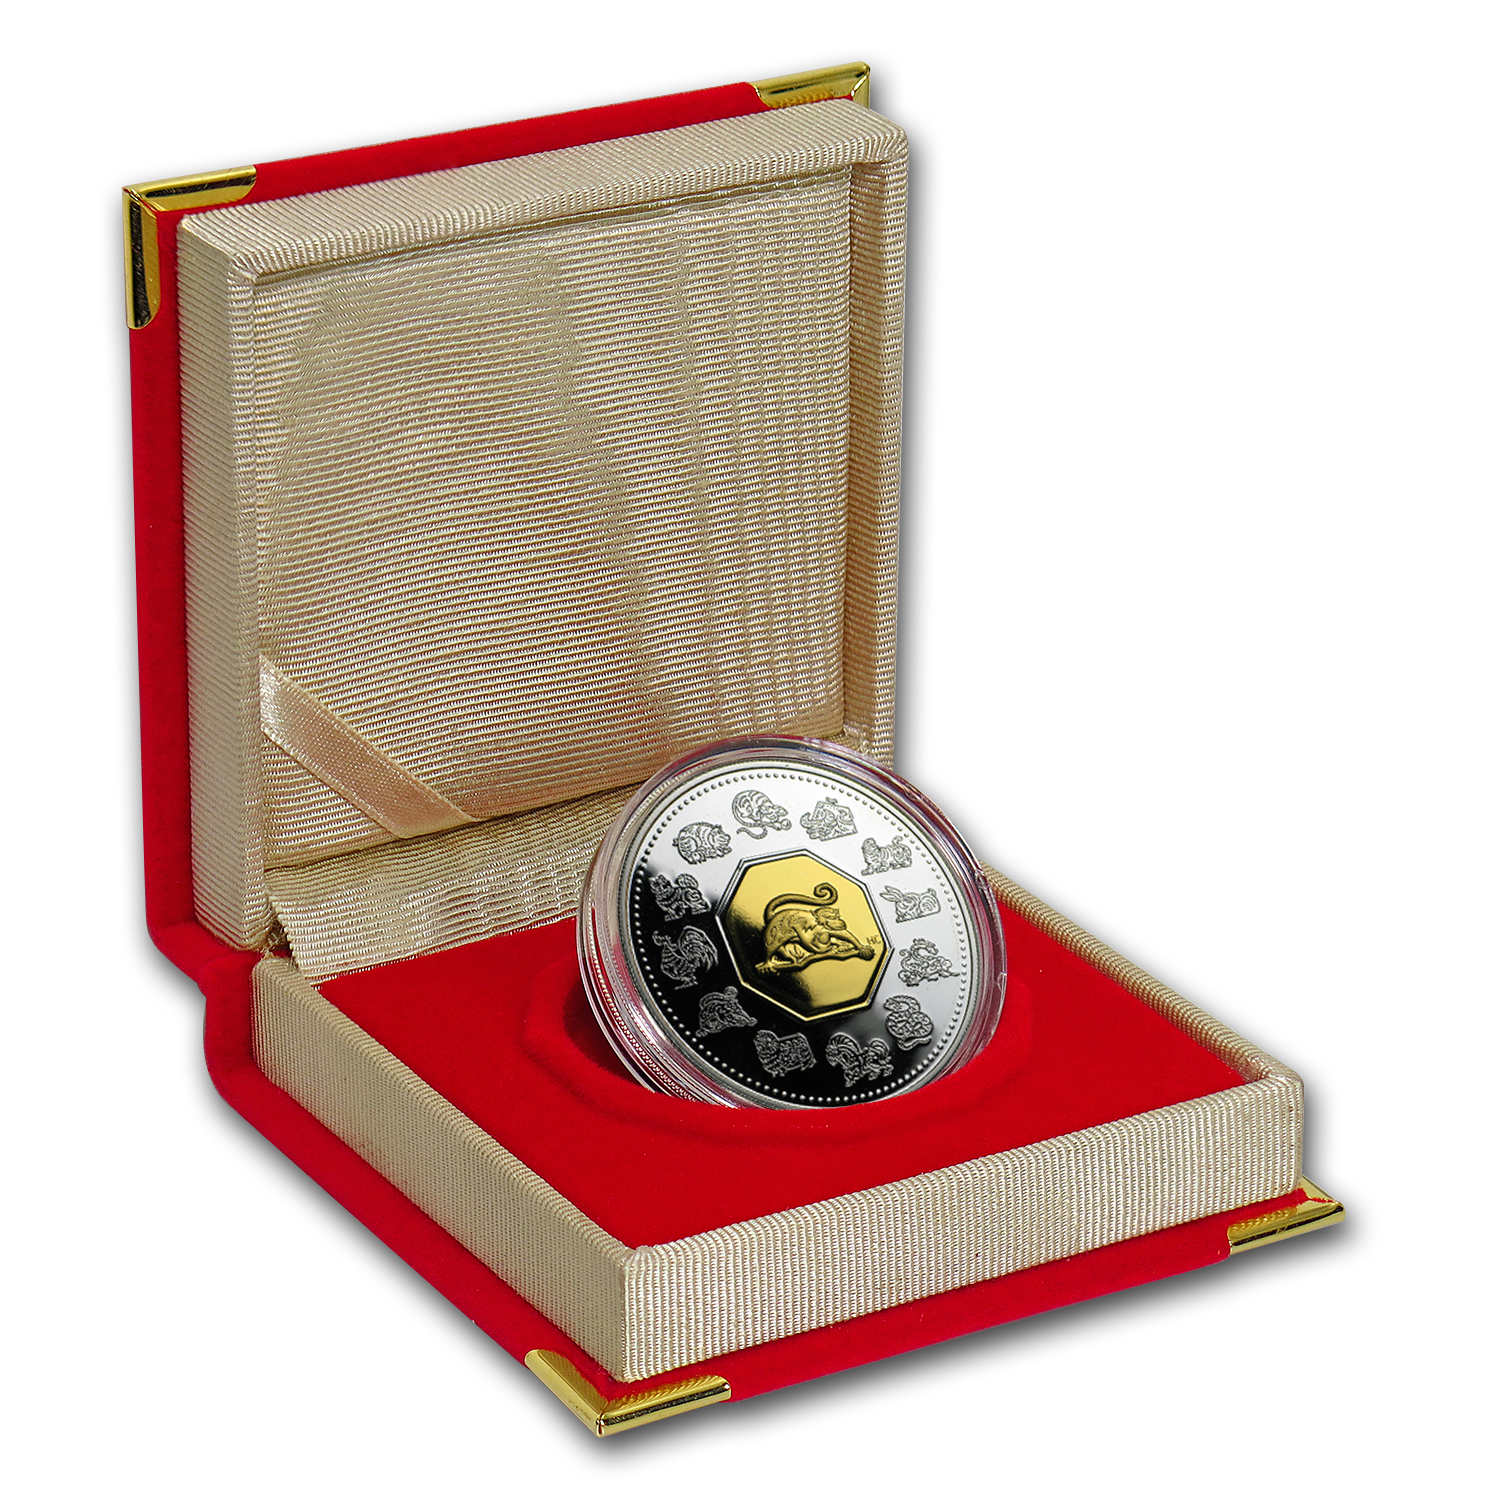 2004 Canada 1 oz Silver Year of the Monkey Proof (w/Box & COA)